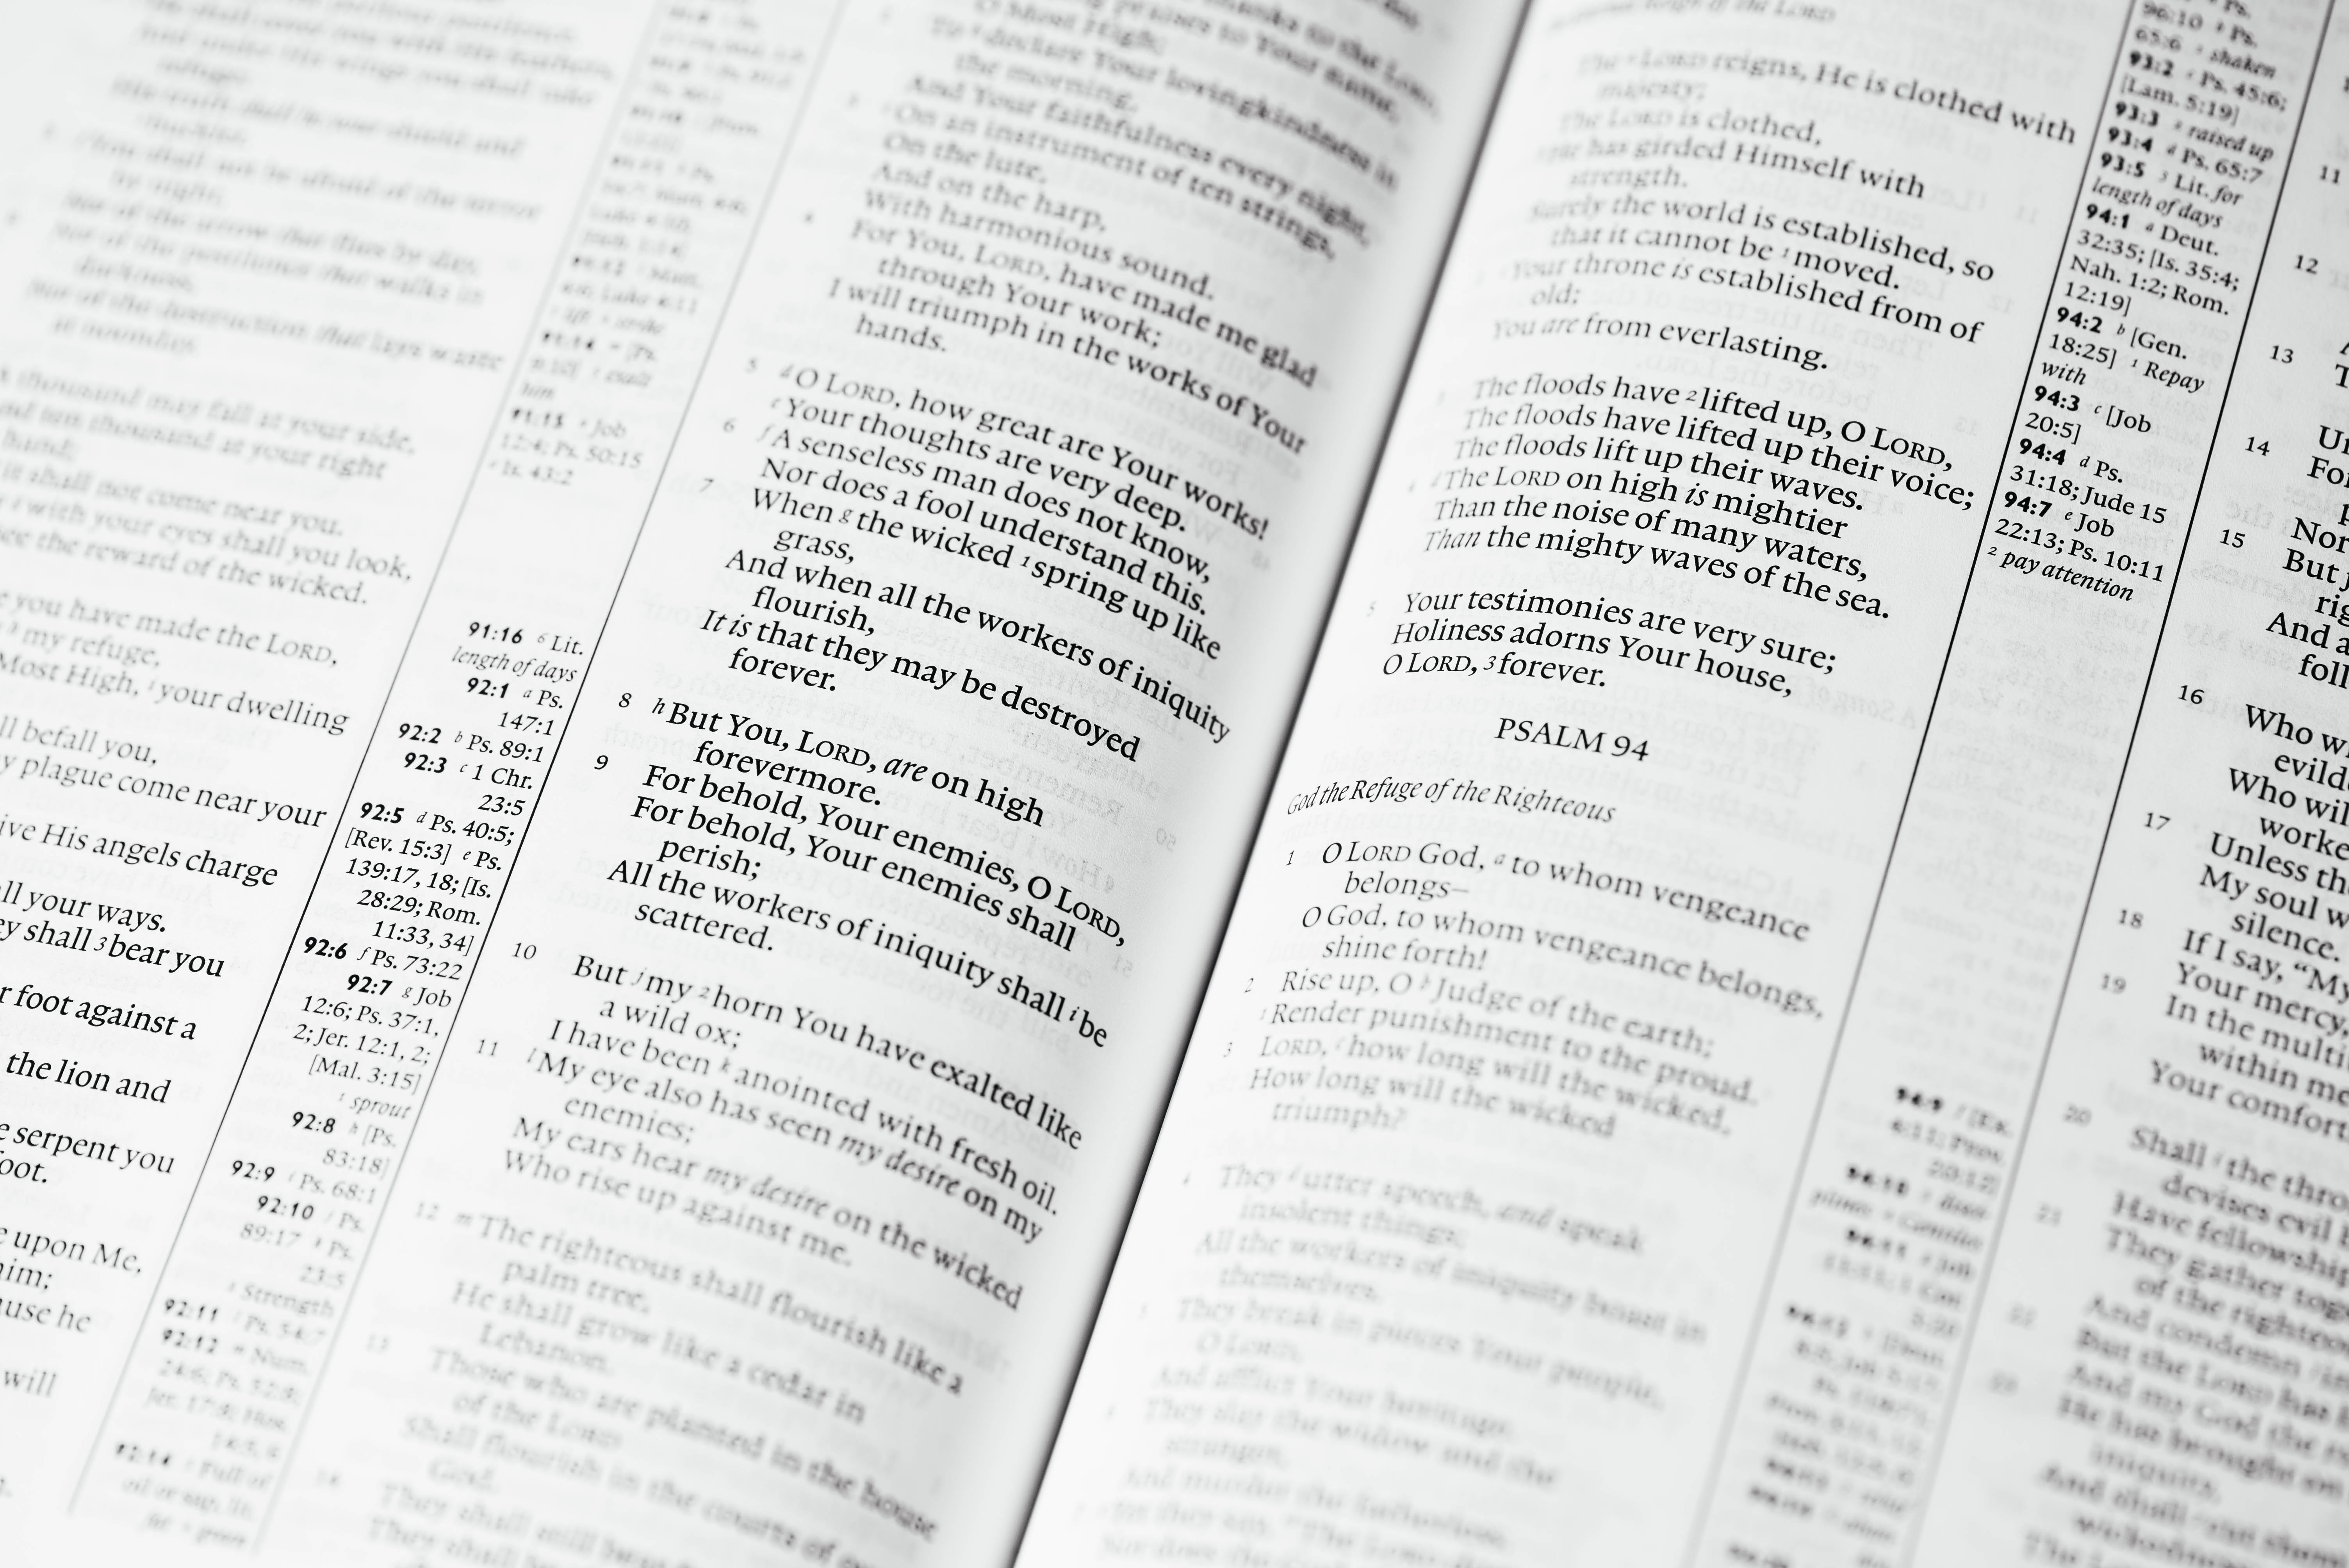 Black and white close up shot of verses in religious book